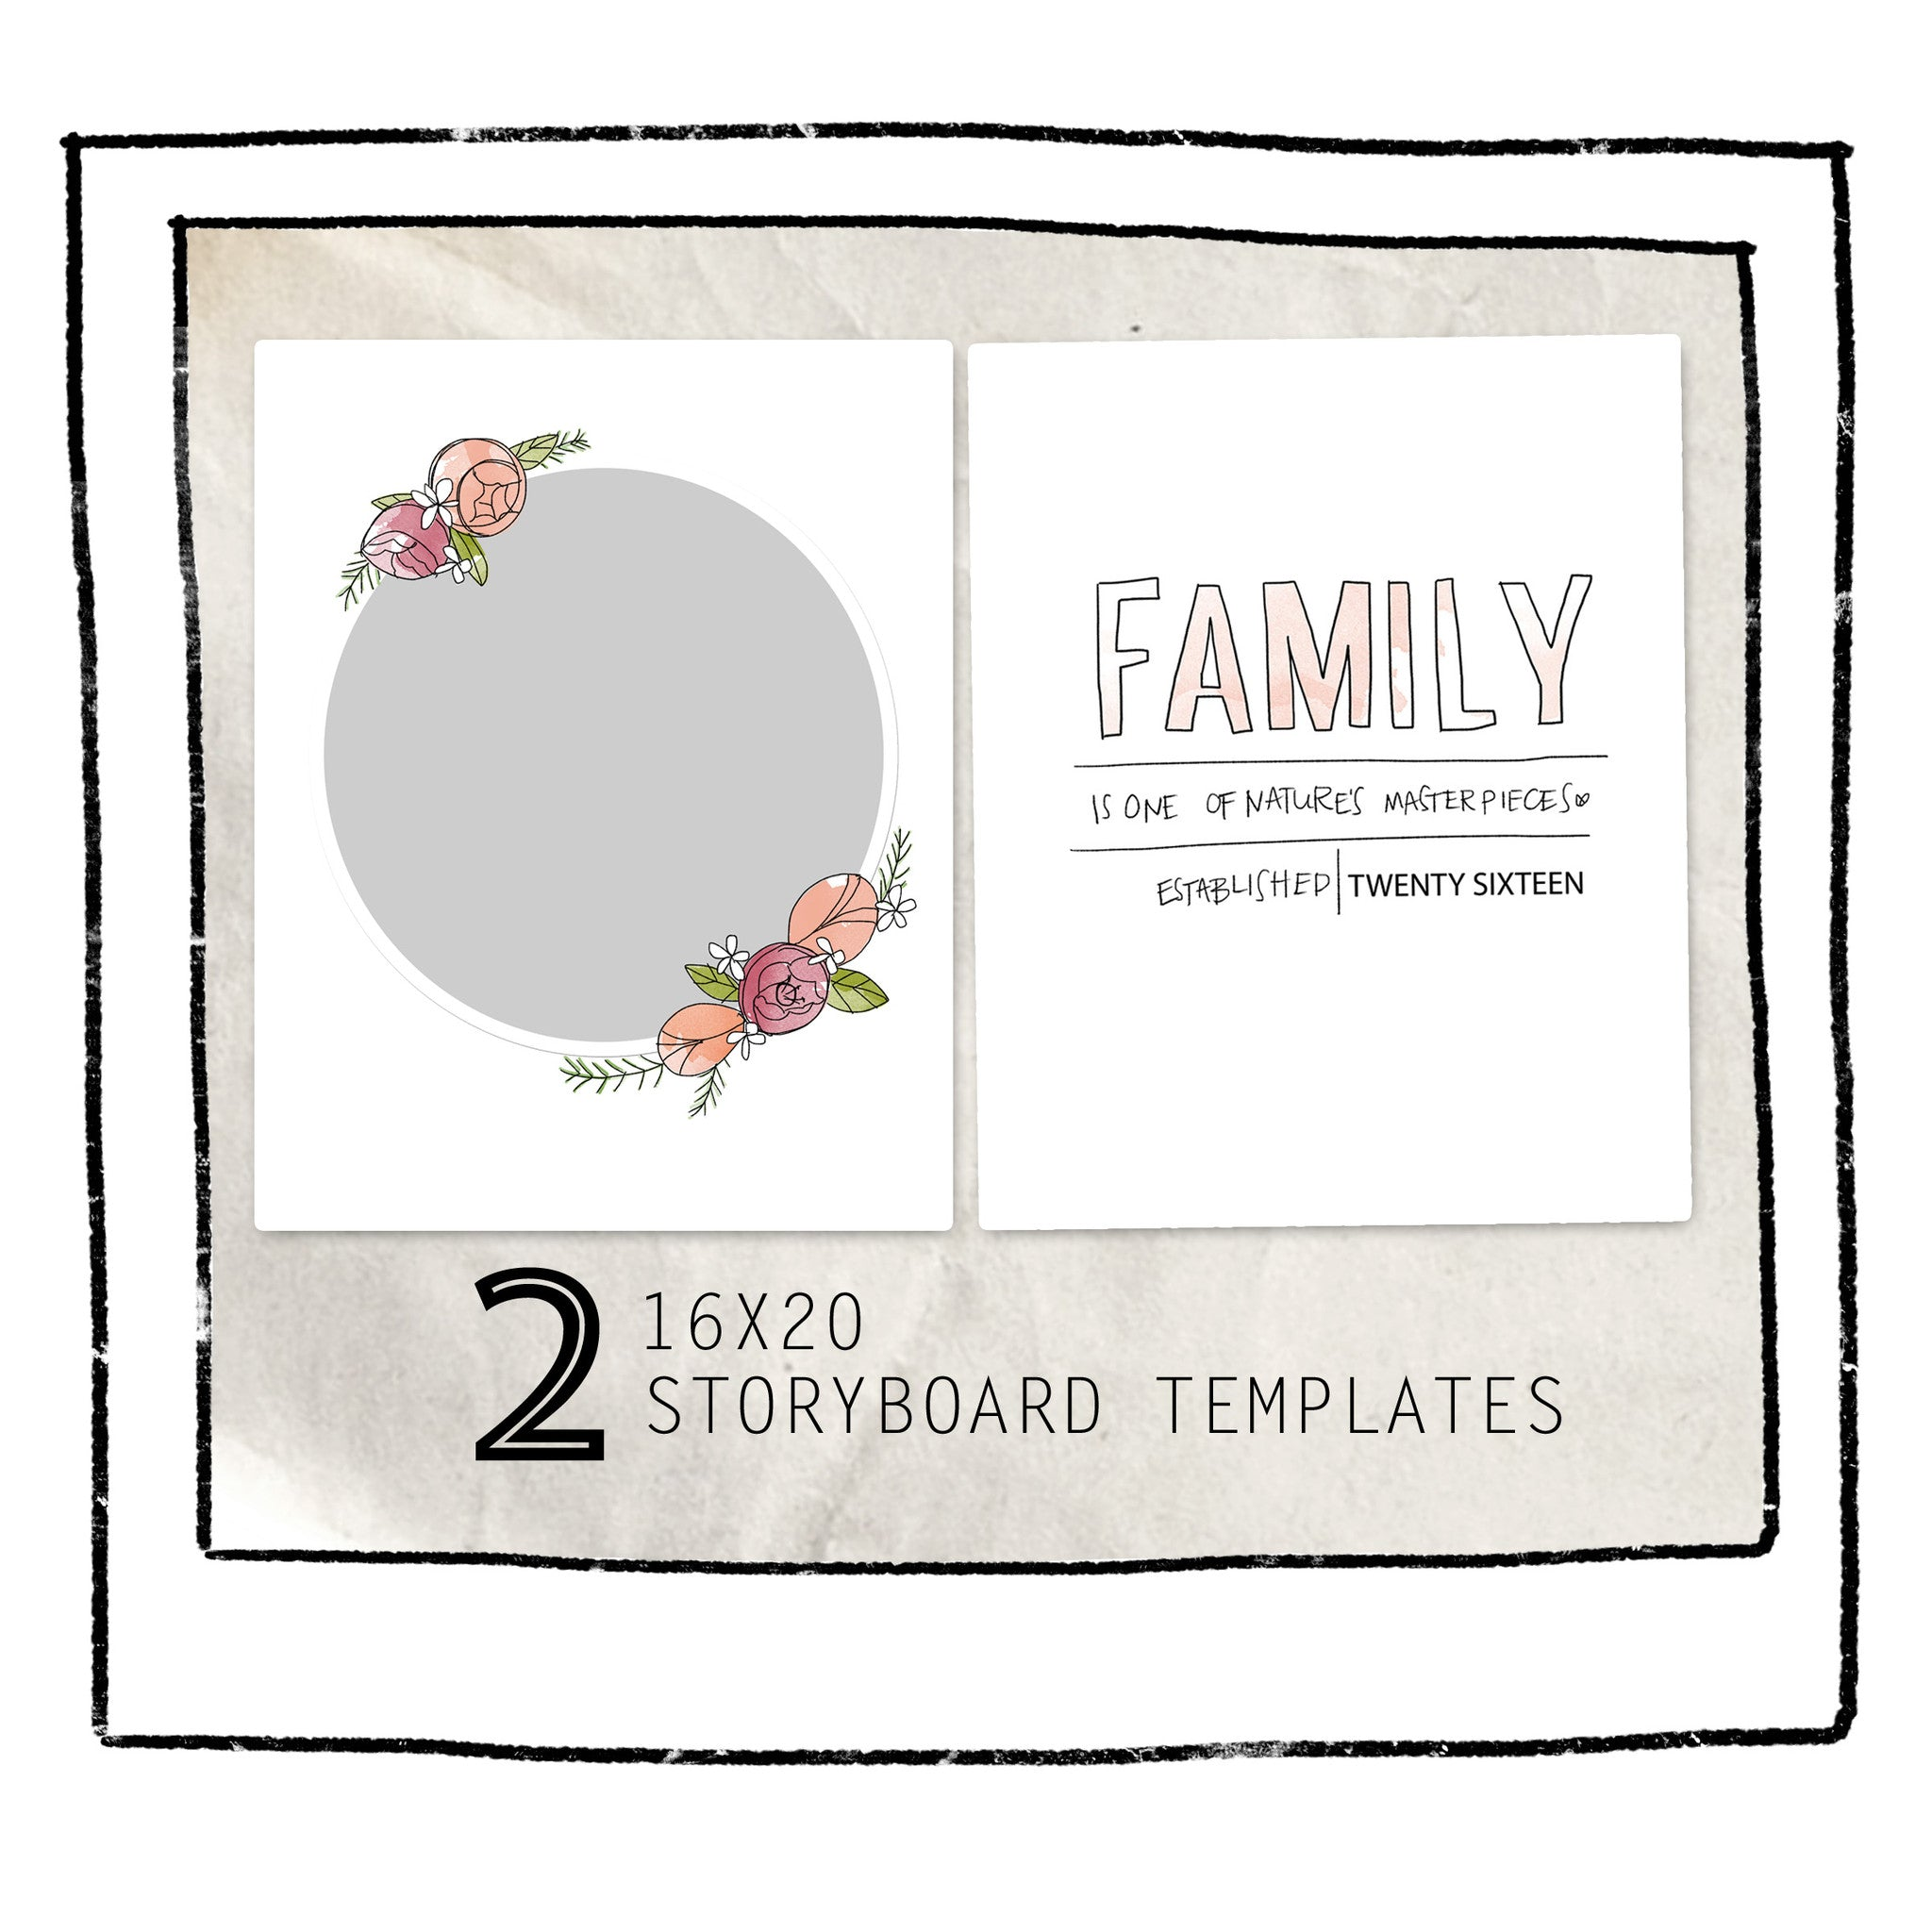 2 STORYBOARD TEMPLATES   FAMILY FLORAL 16X20